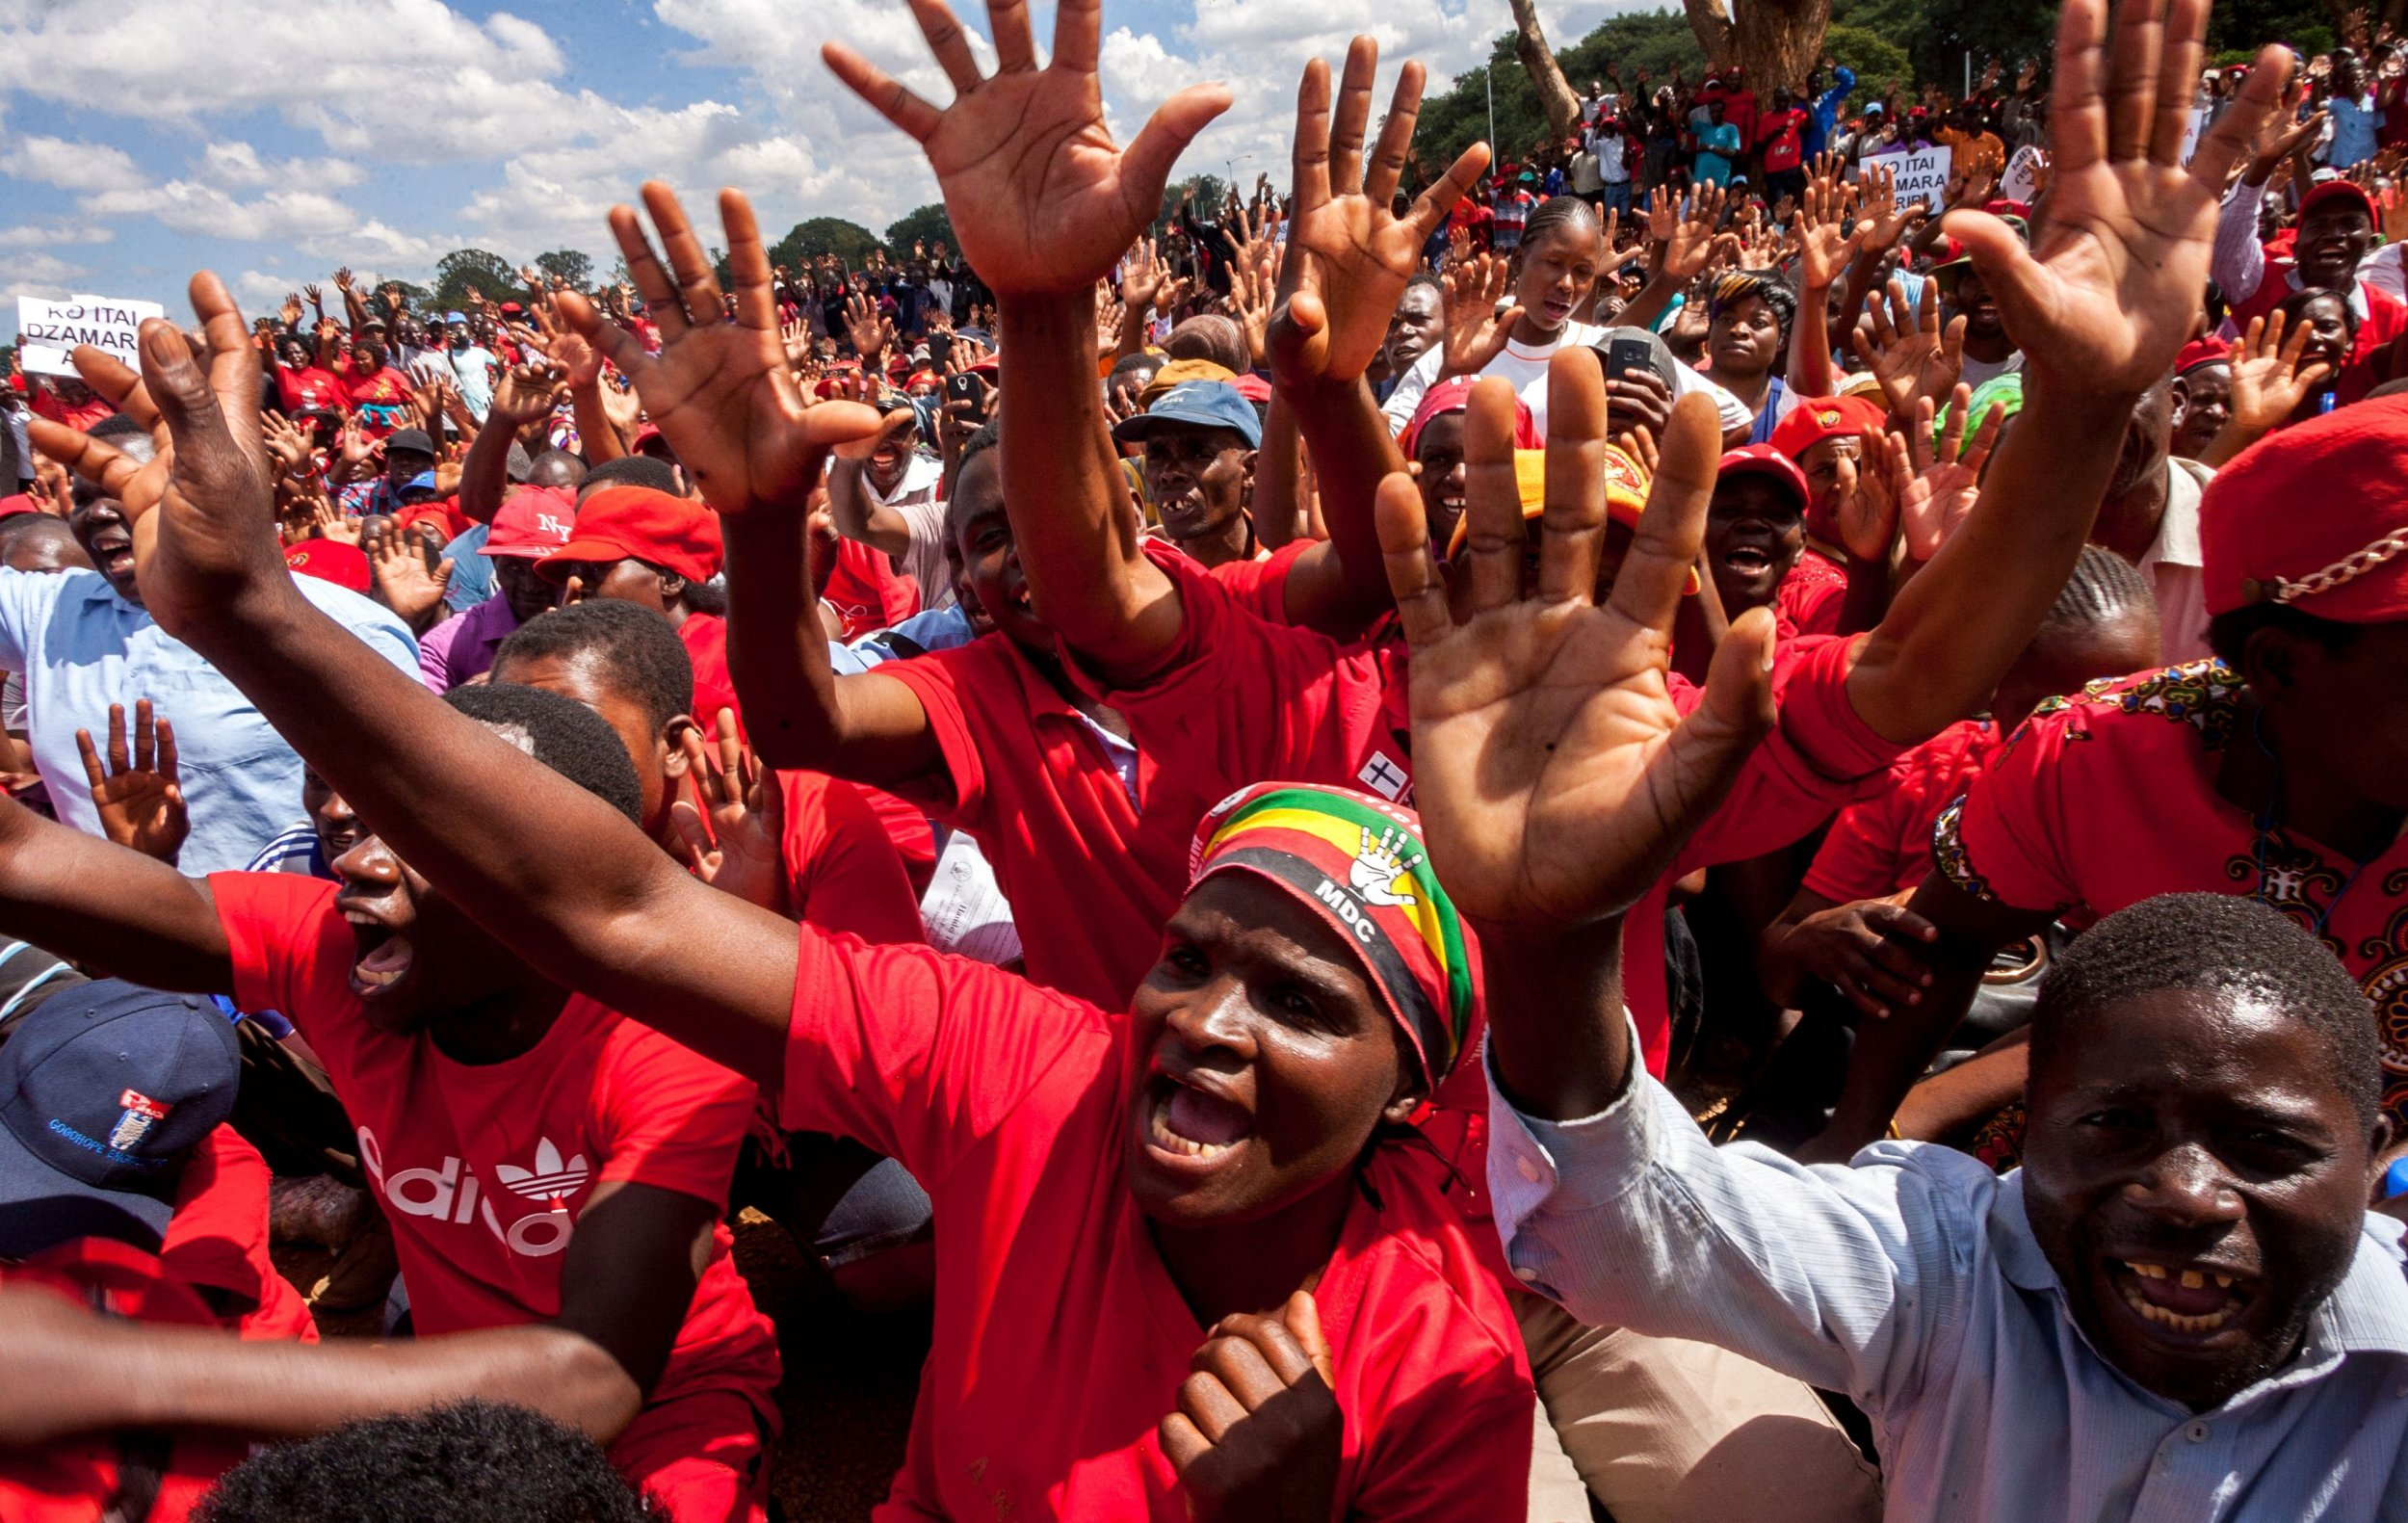 MDC supporters protest against Mugabe in Harare.